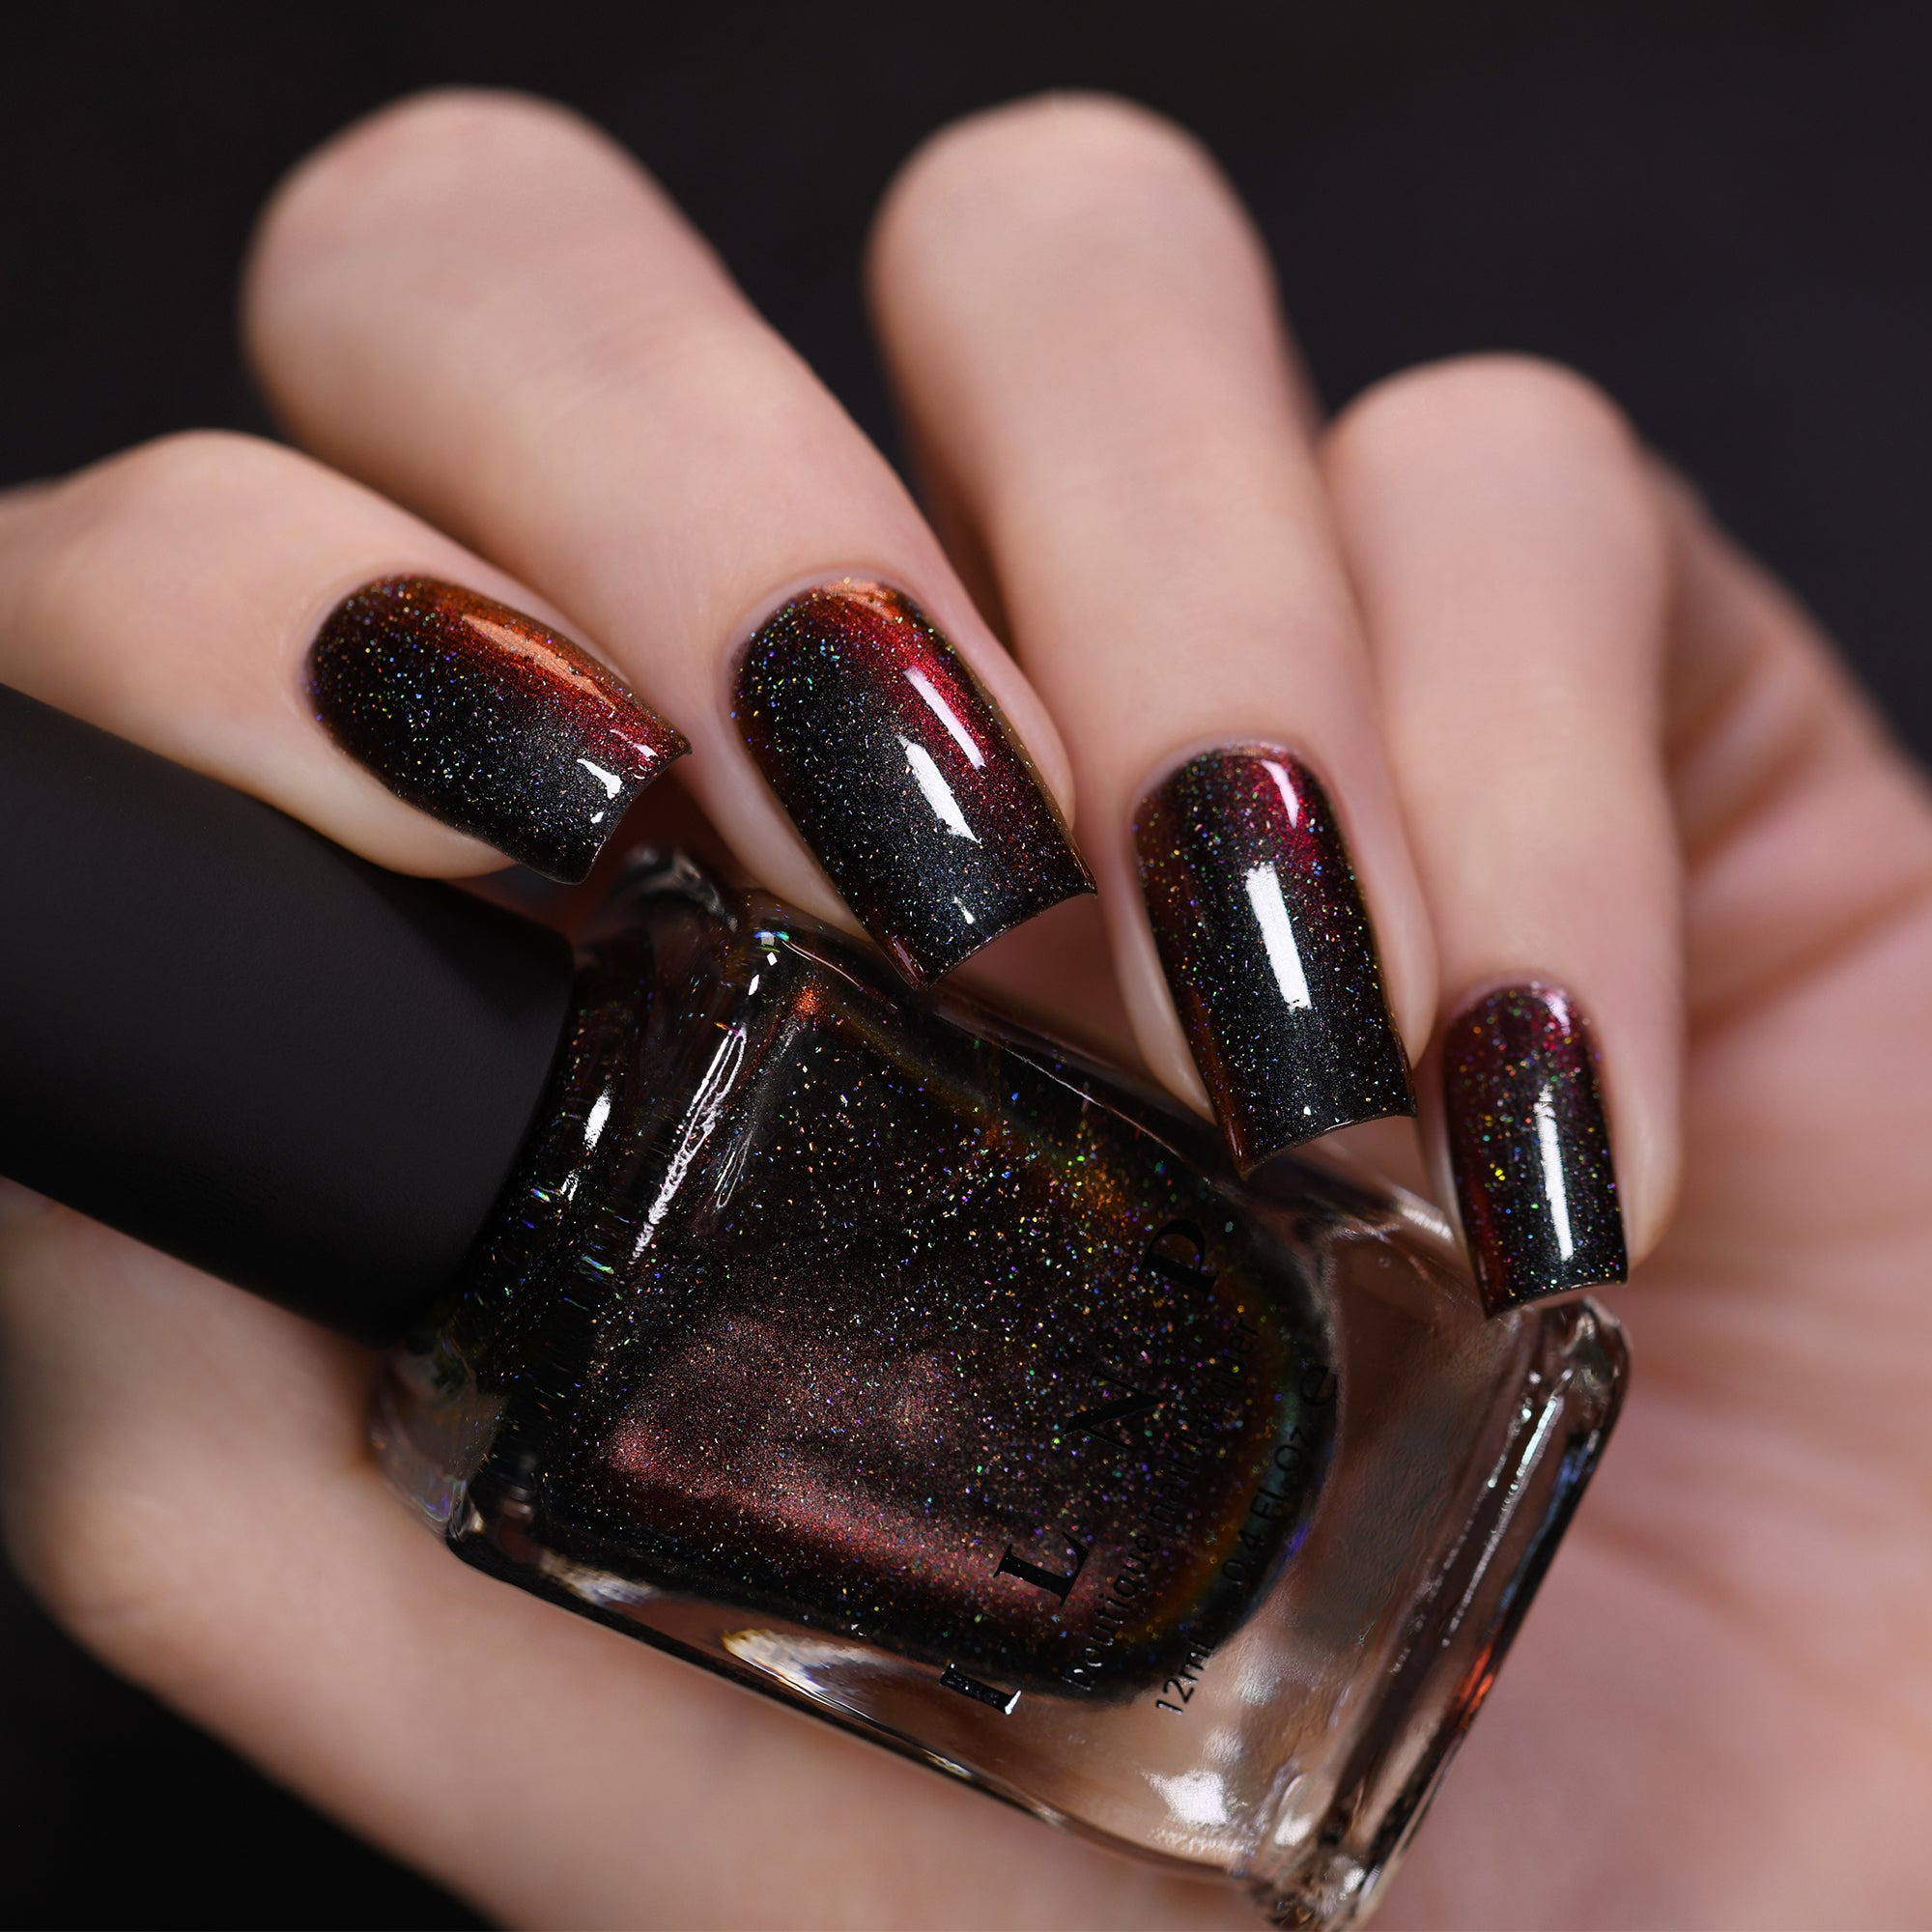 ILNP - Eclipse (H)